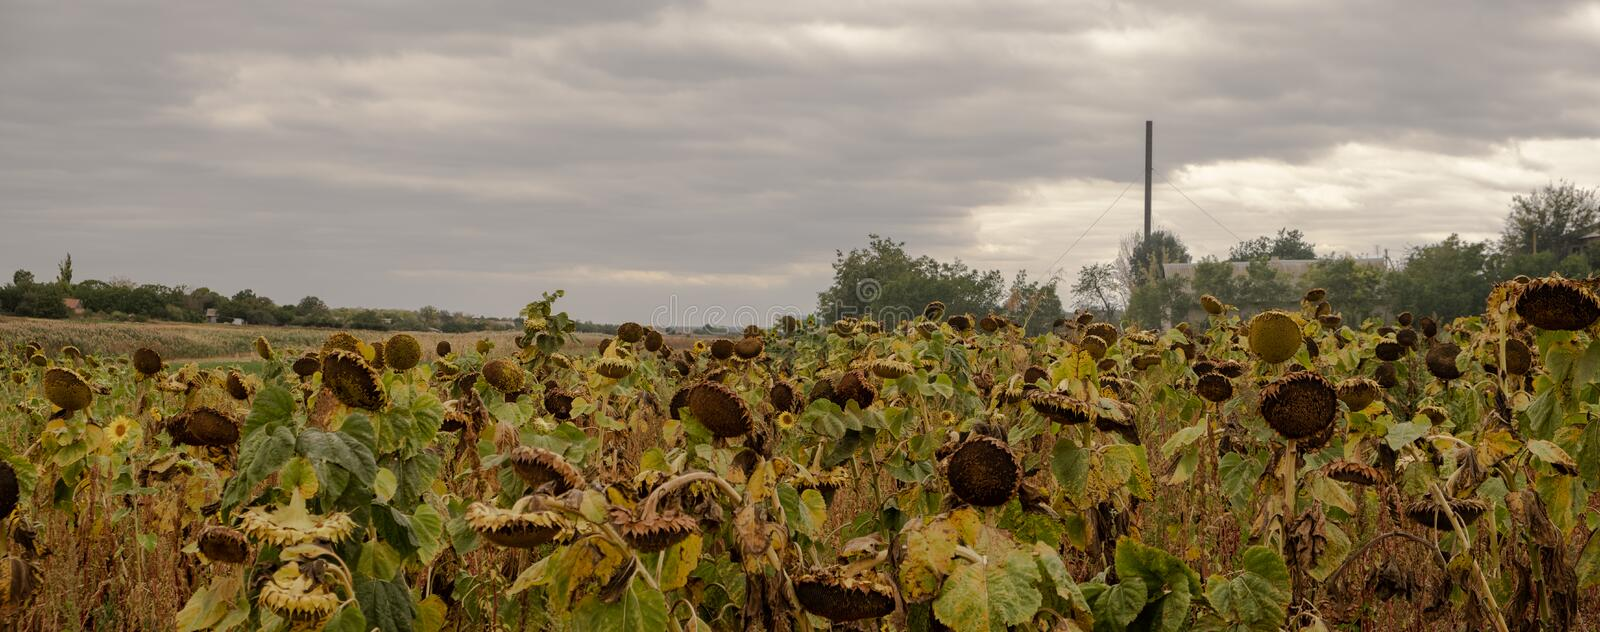 Panorama field of sunflowers on farm. Landscape countryside. In autumn royalty free stock images